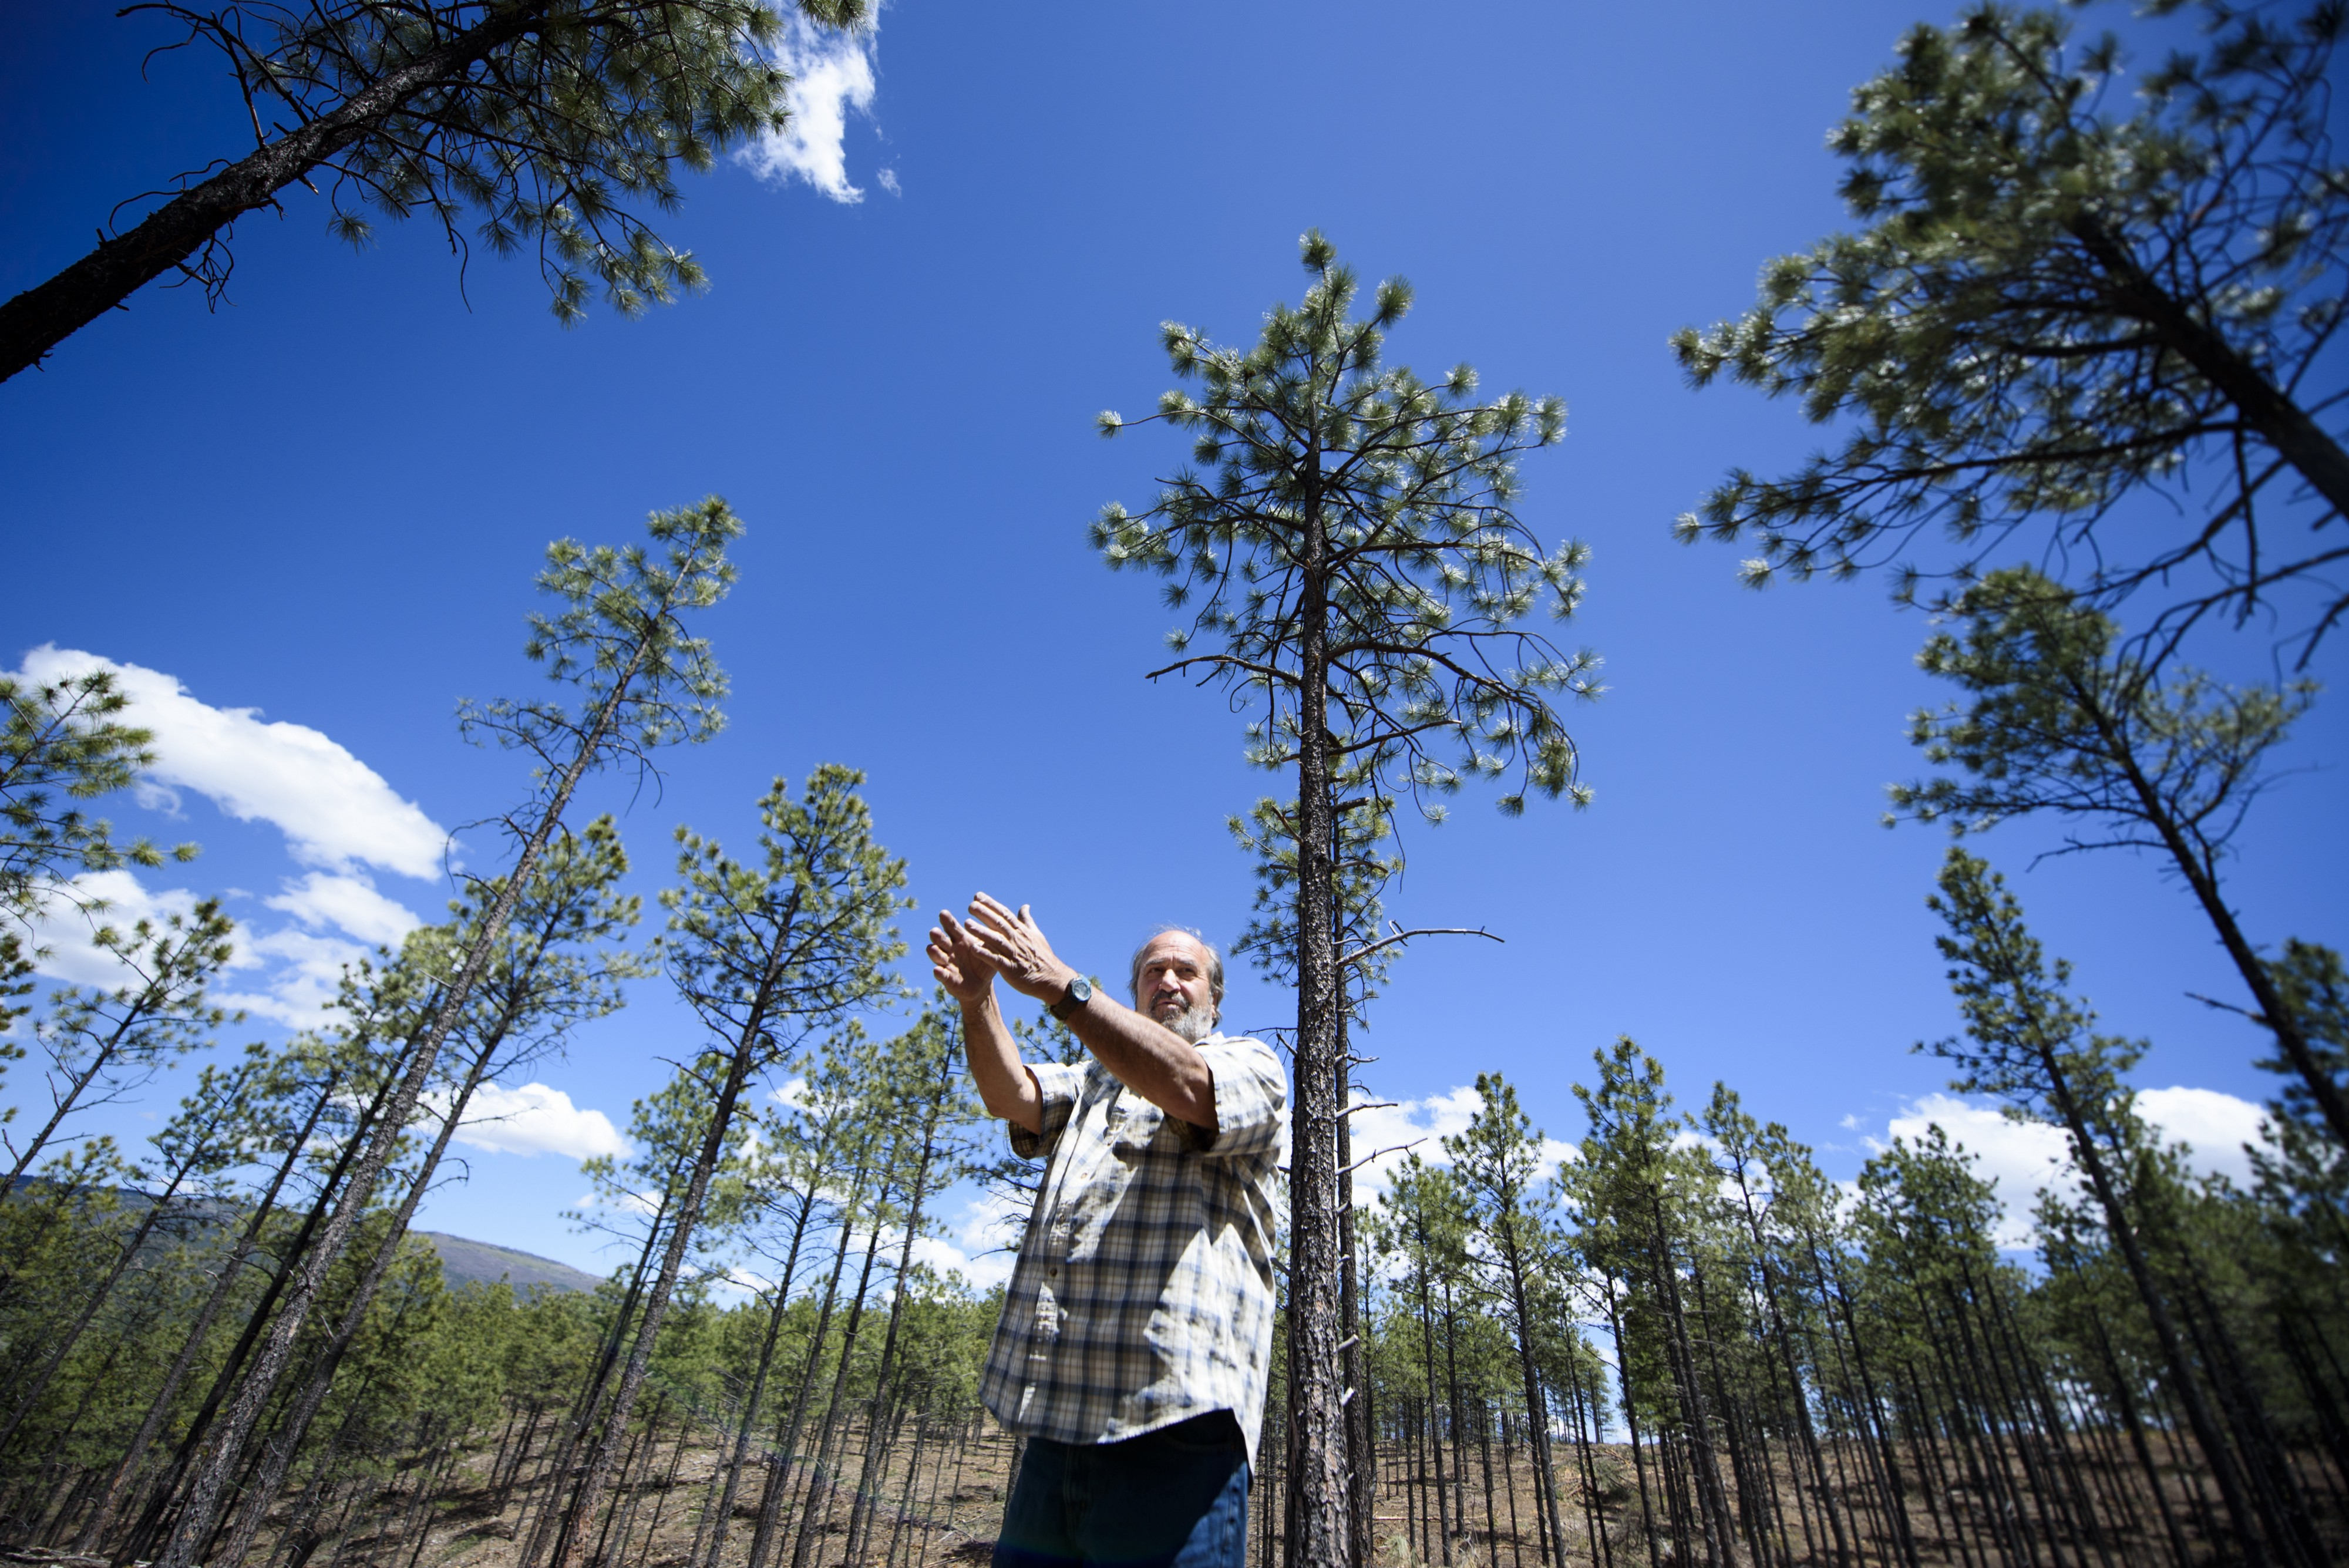 Can cutting down trees protect New Mexico's water? - Small